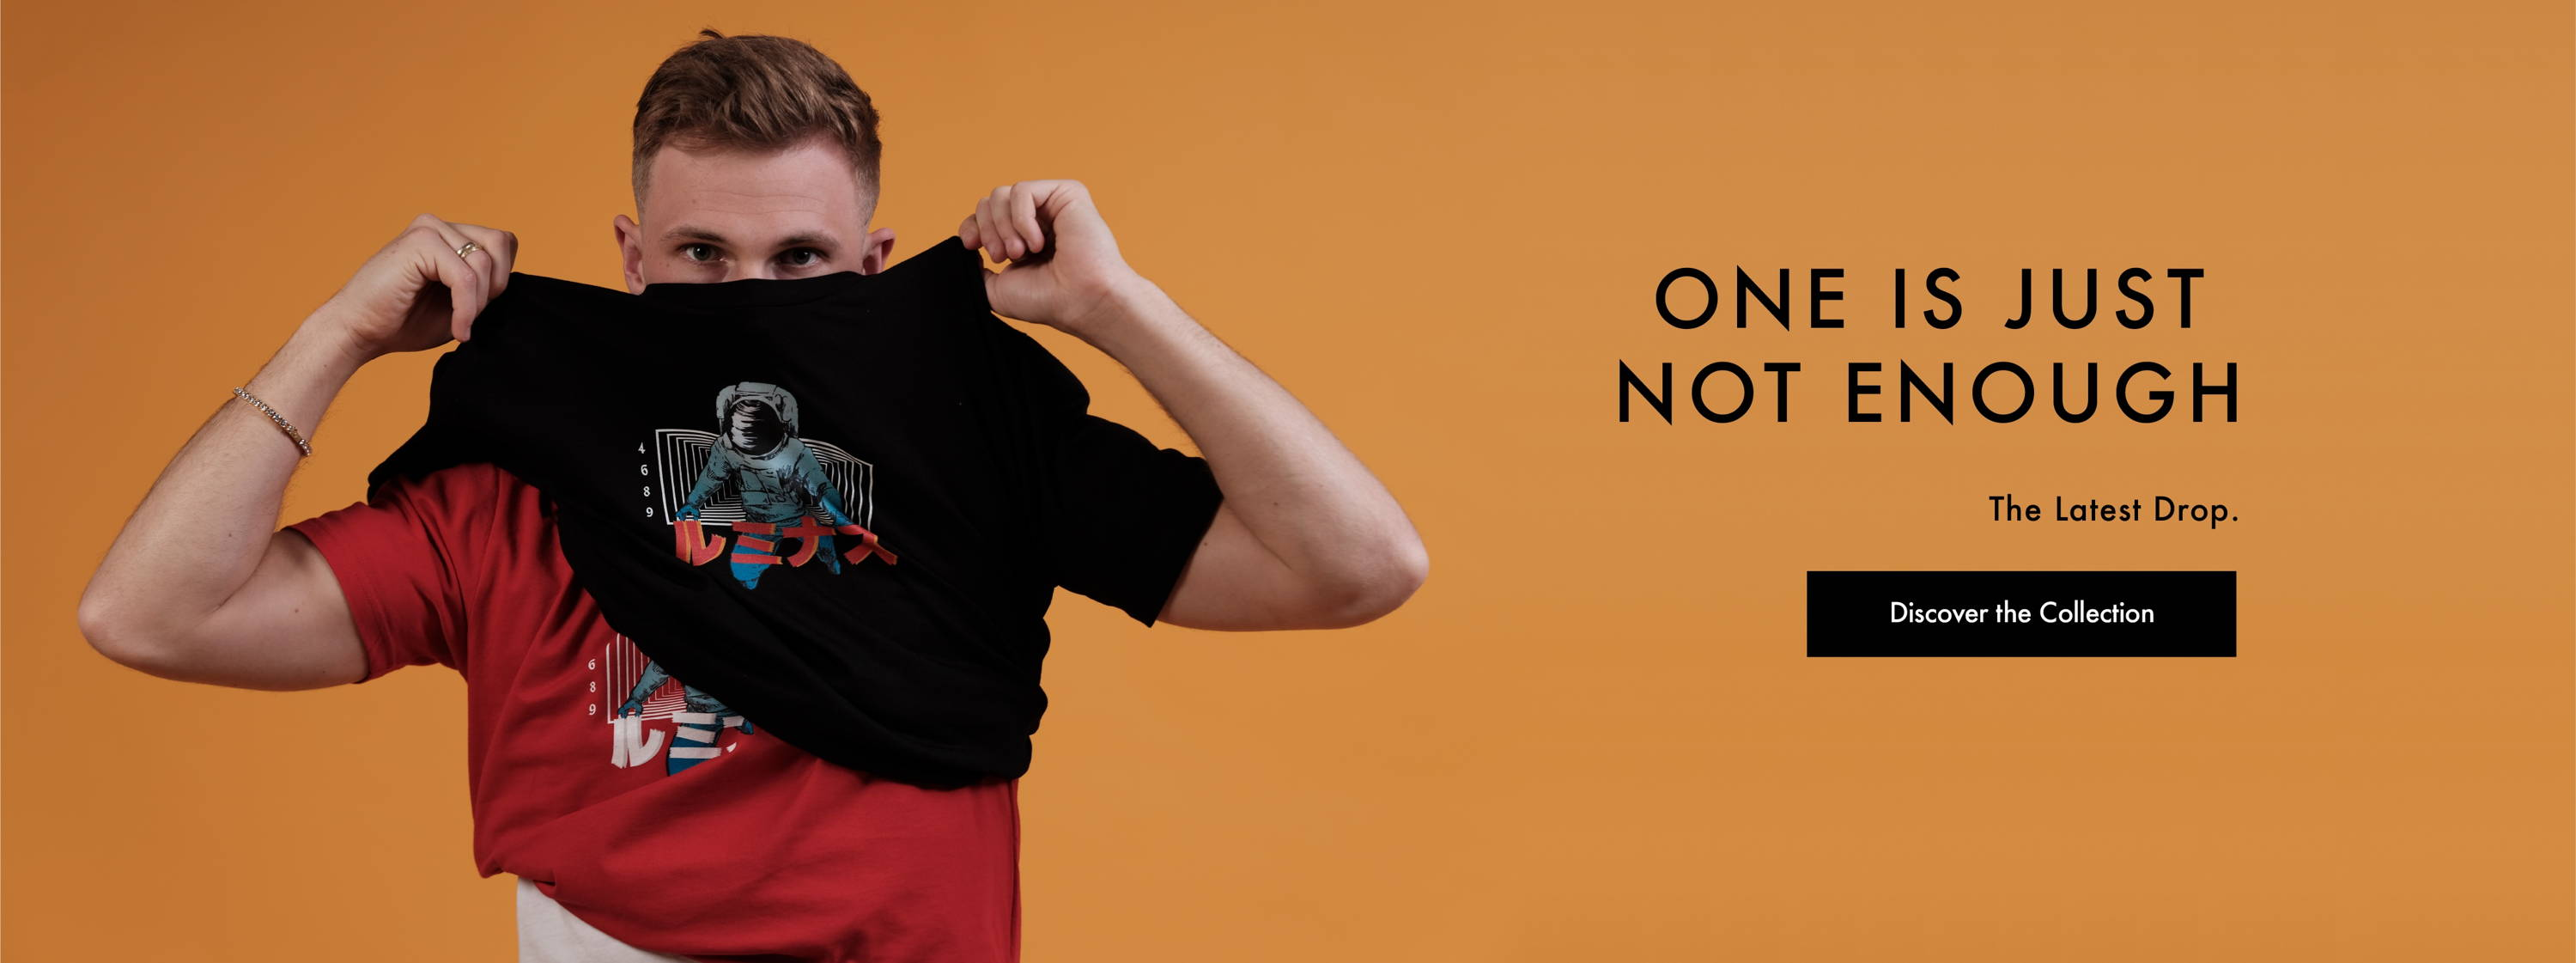 One Is Just Not Enough - SS21 Launches 01.06.21 - Pre-order Now